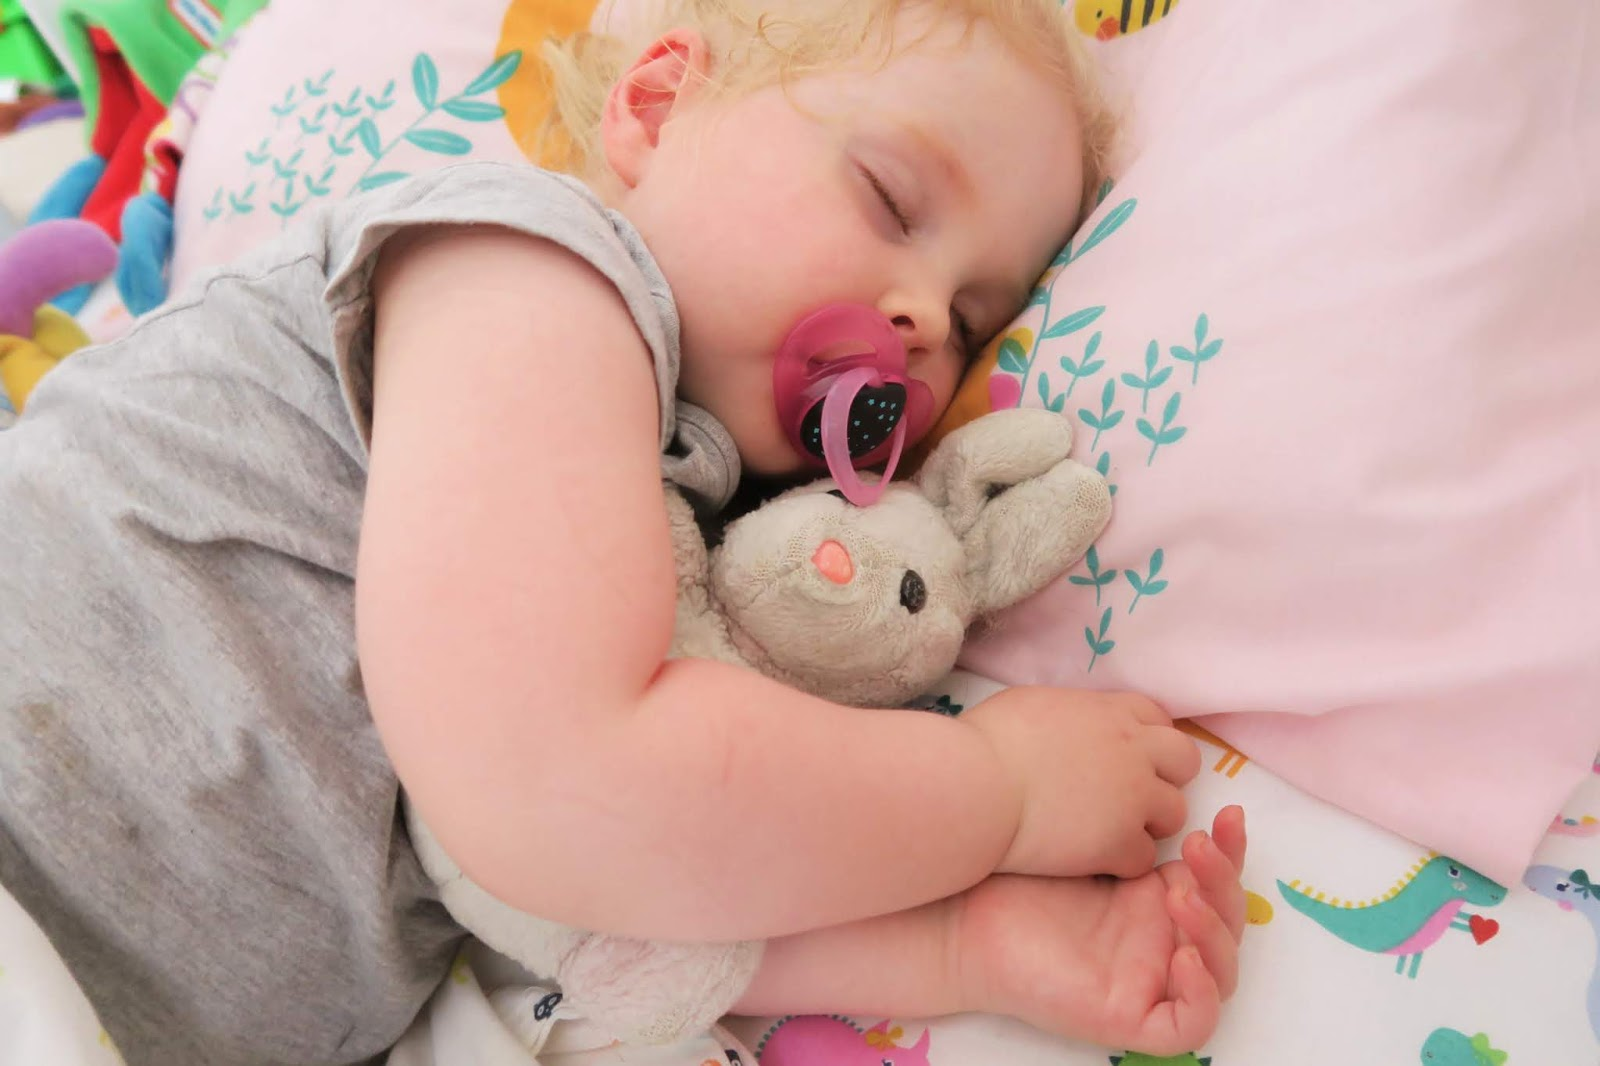 Elise asleep and cuddling my bunny toy from my childhood.